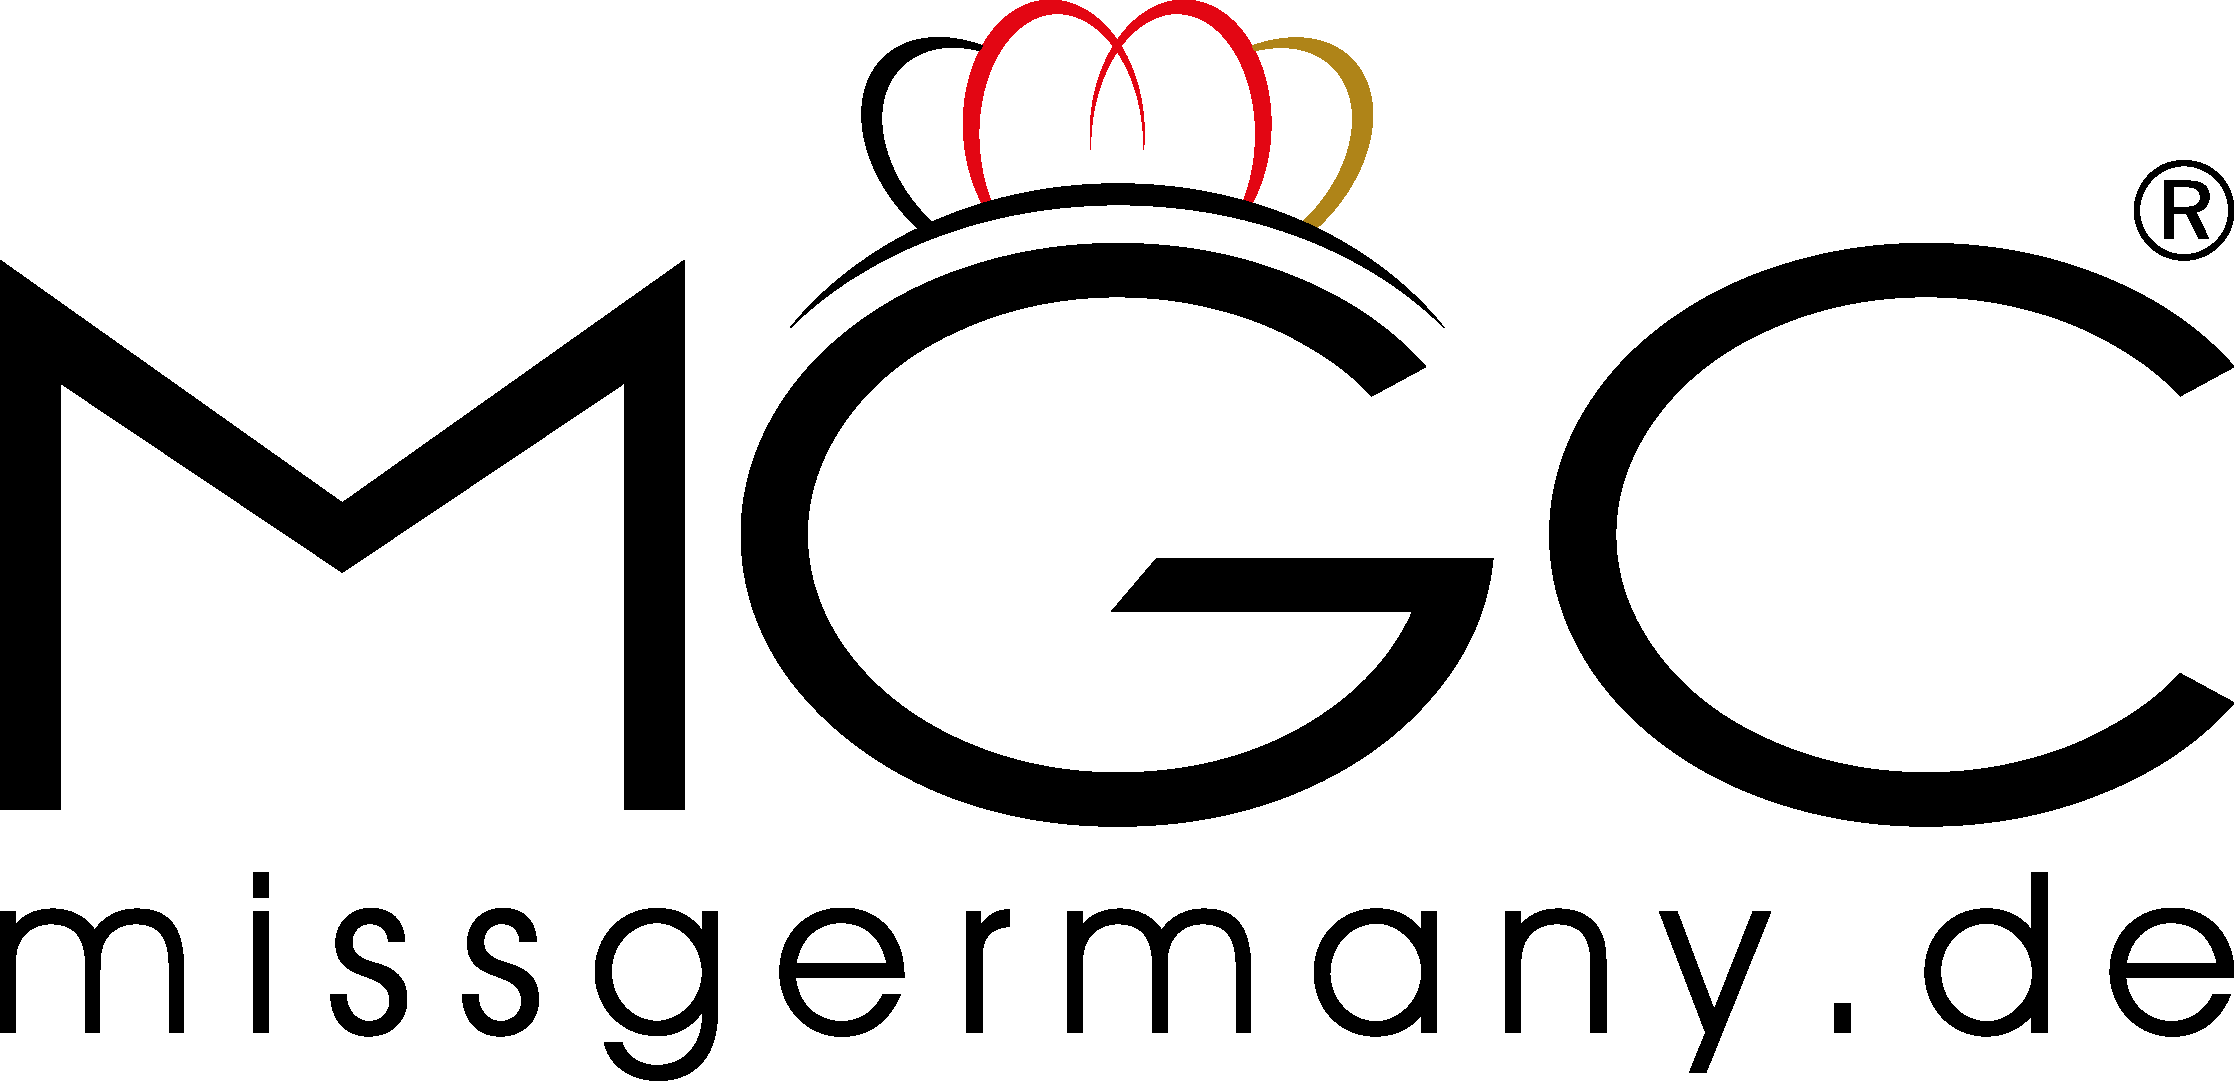 MGC-Miss Germany Corporation Klemmer GmbH & Co. KG